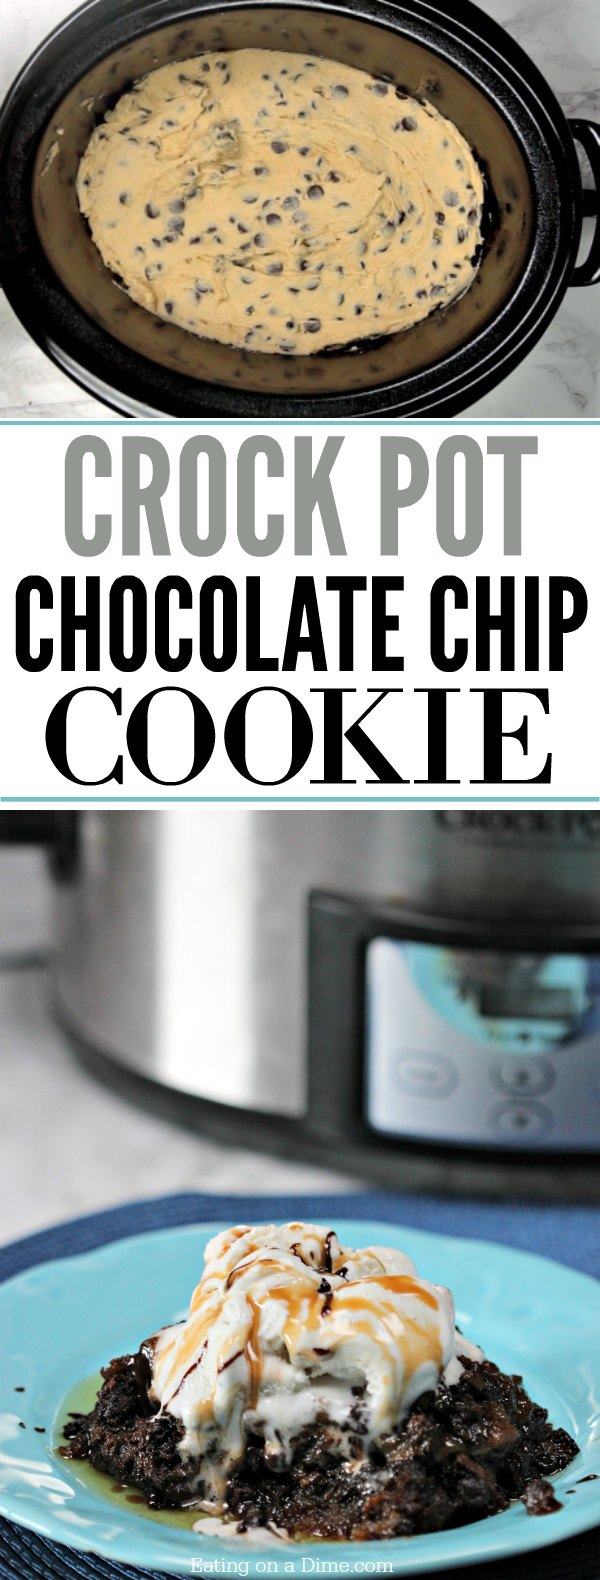 Crock pot chocolate chip cookie recipe easy crock pot for Quick and easy crock pot dessert recipes